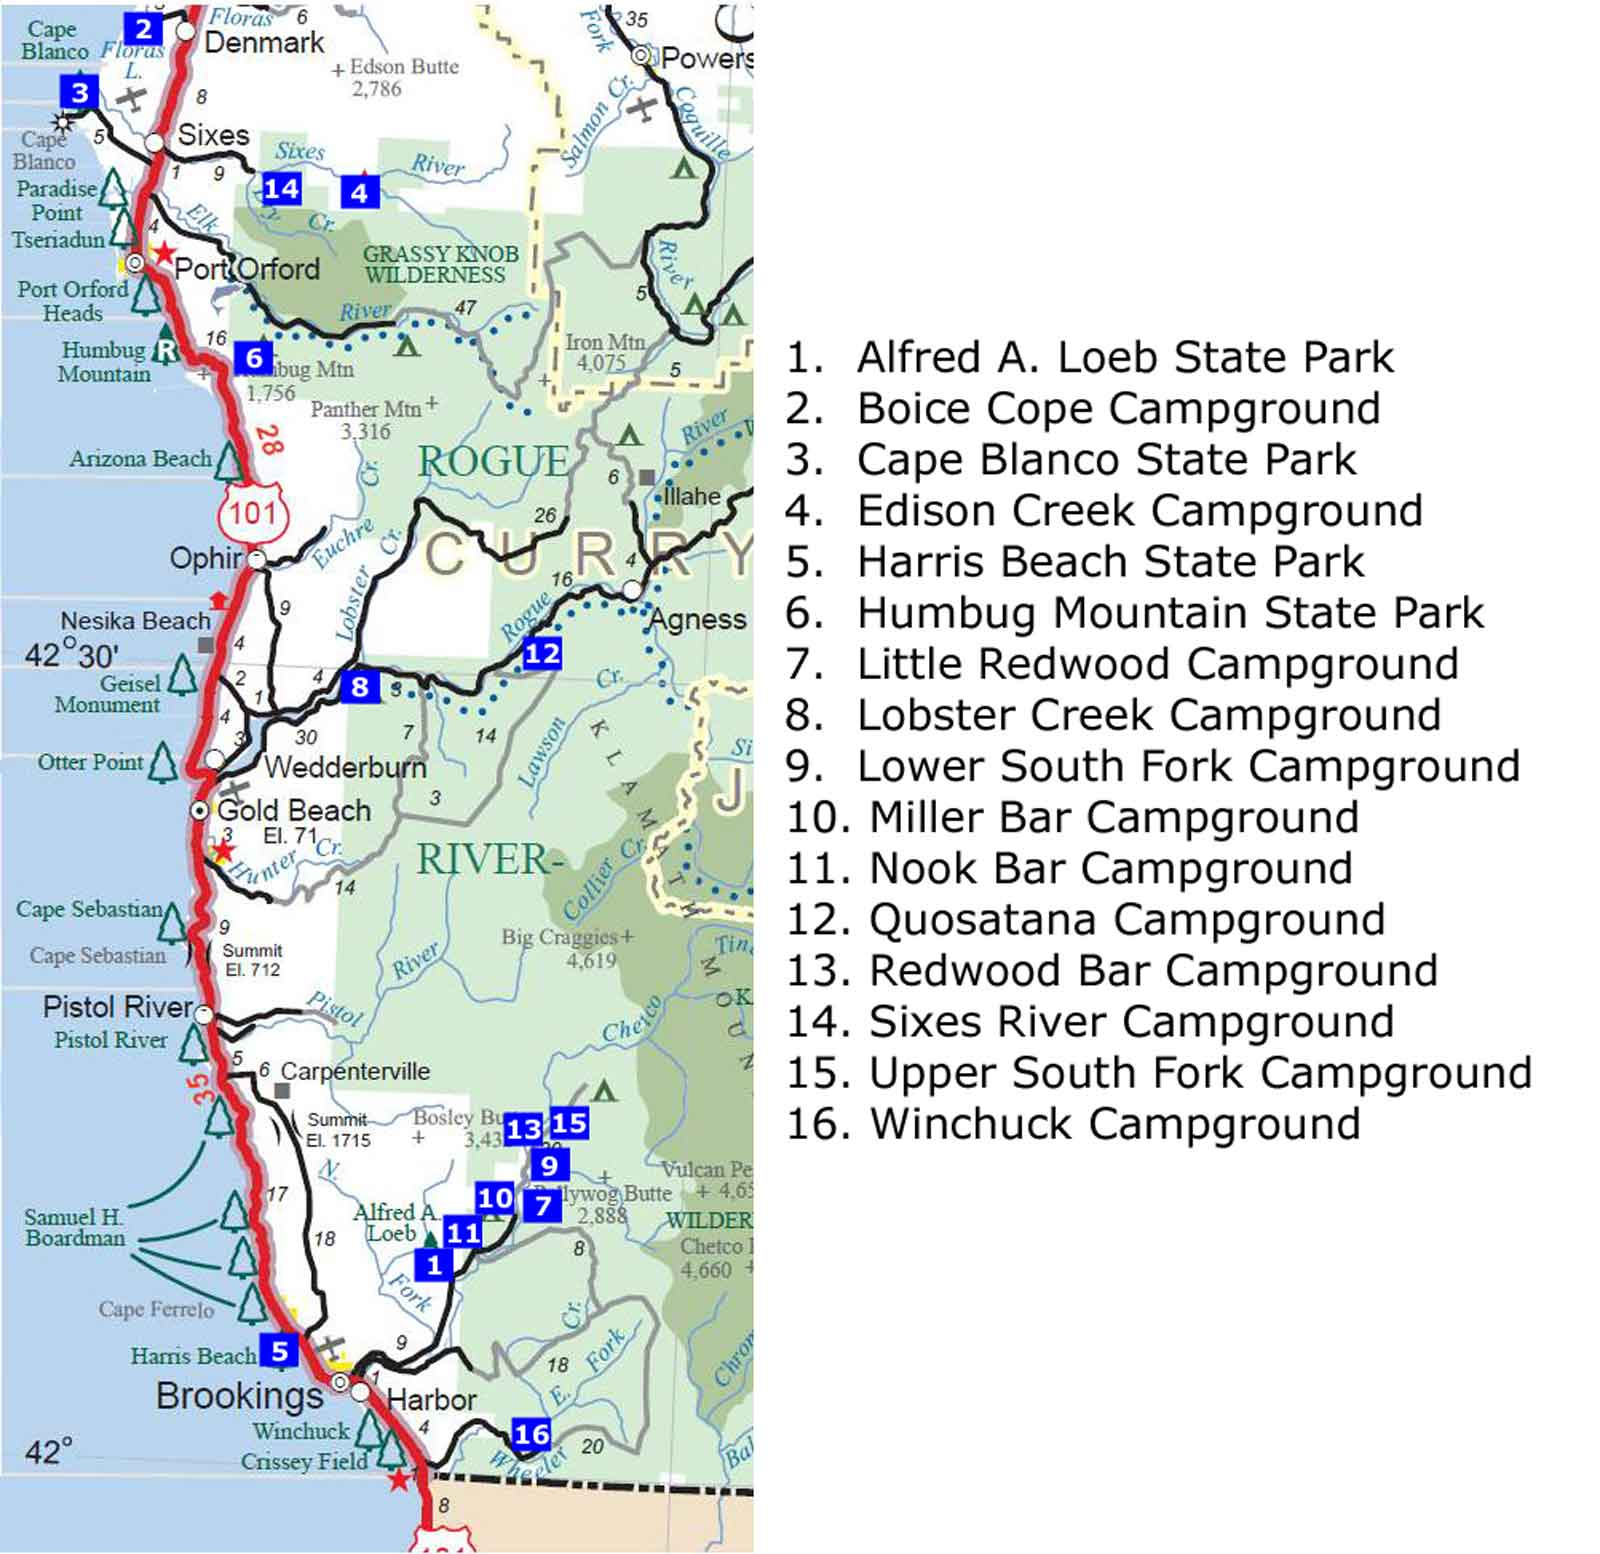 California State Beaches Map - Klipy - Northern California State Parks Map